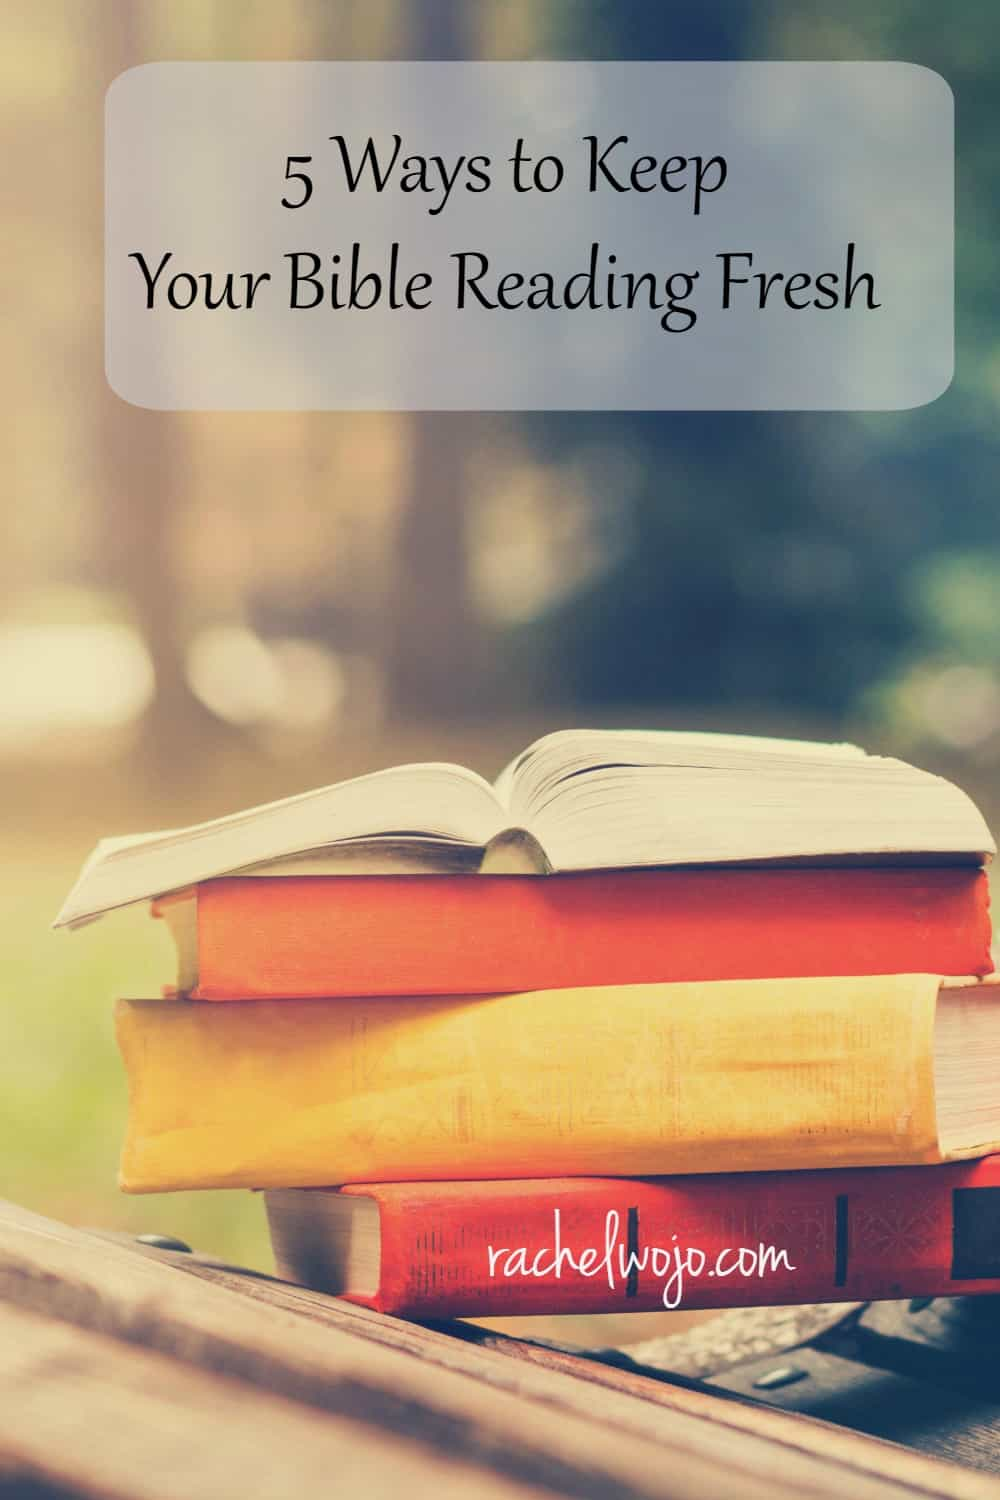 5 Ways to Keep Your Bible Reading Fresh